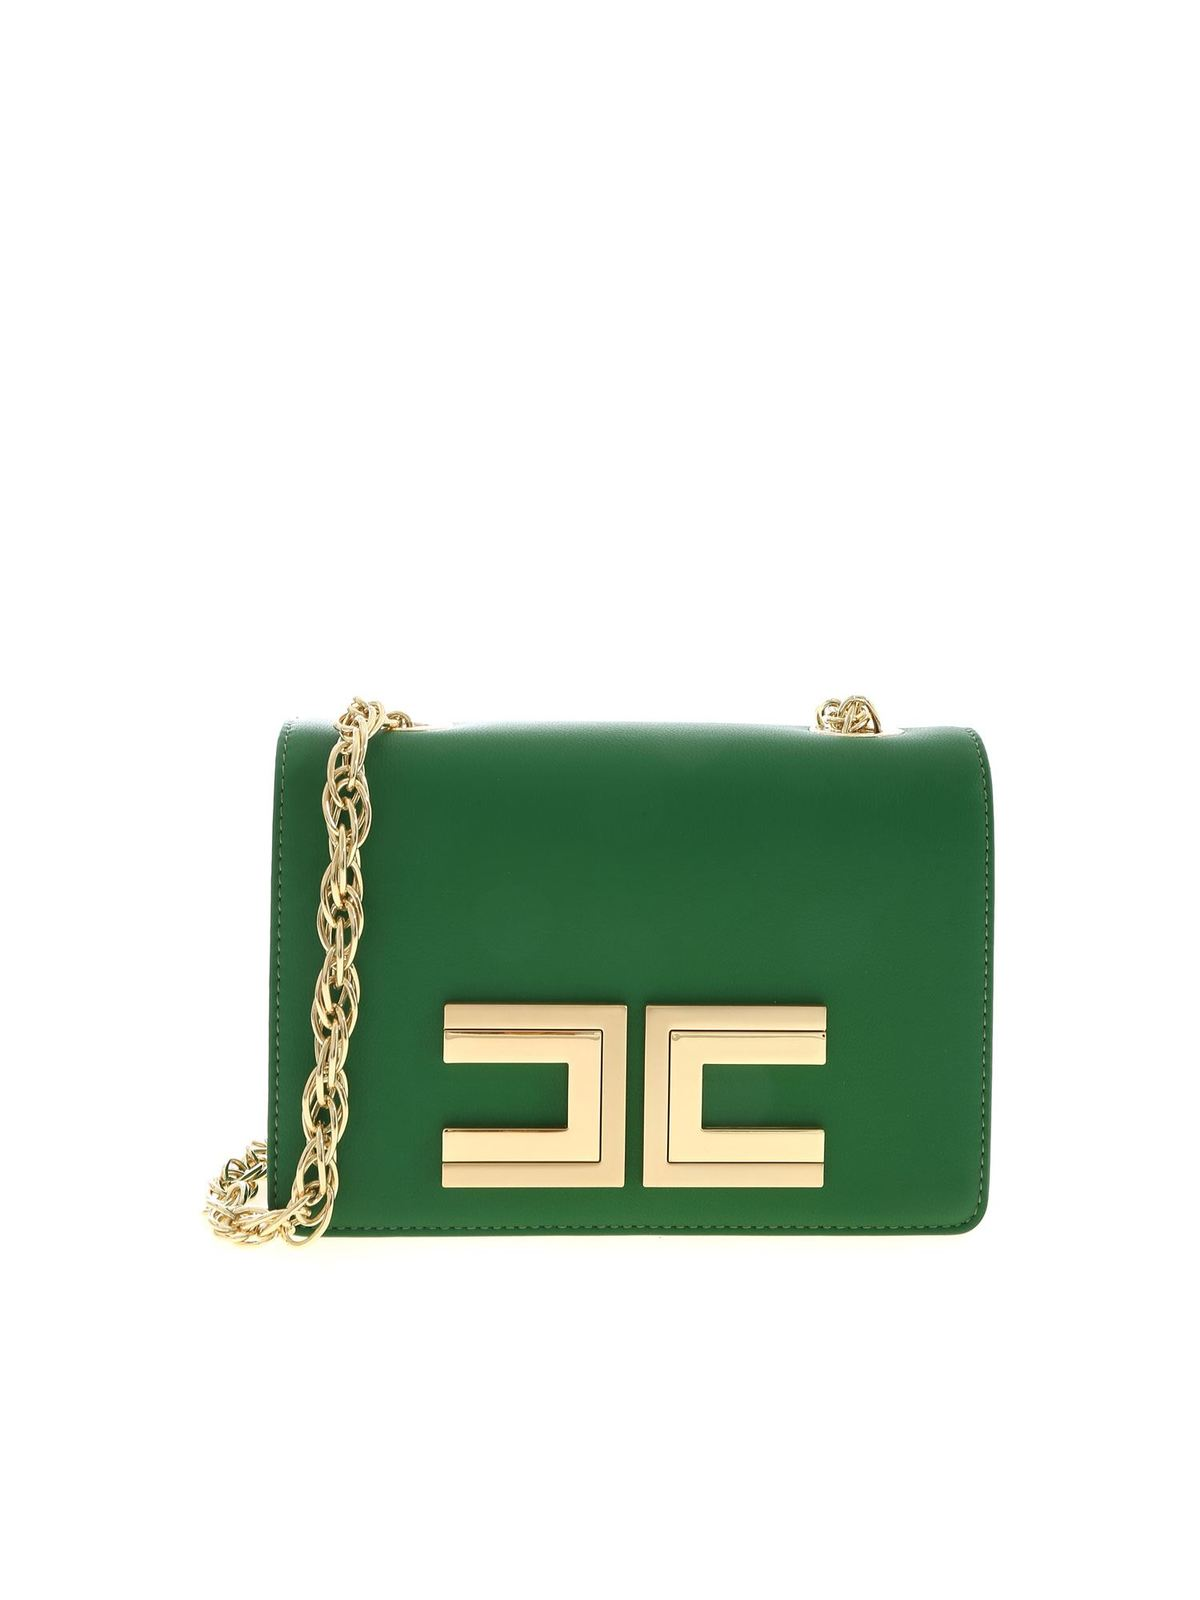 Elisabetta Franchi GOLD LOGO BAG IN GREEN